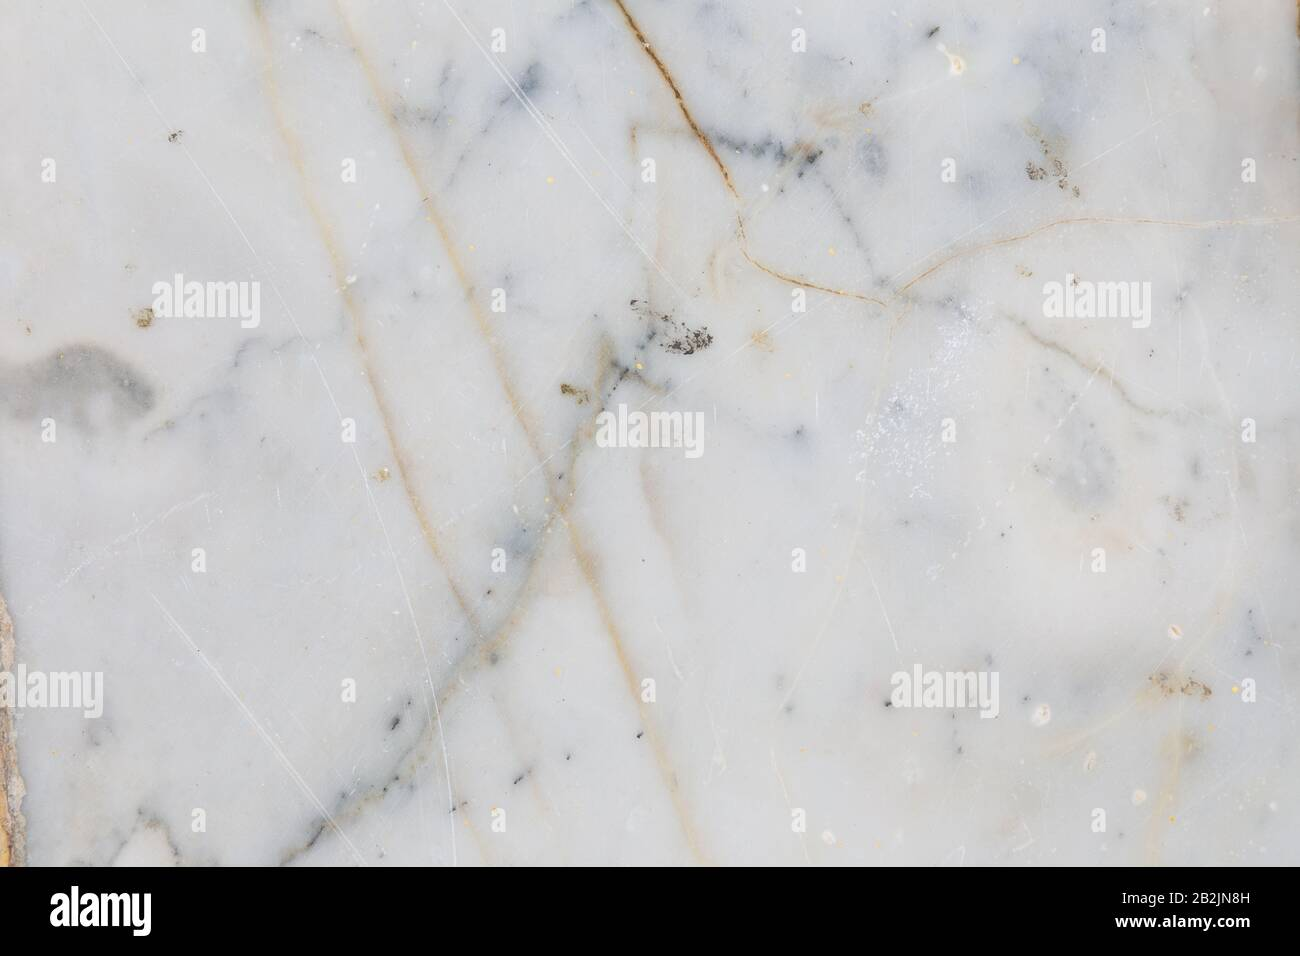 Abstract Marble Floor Tile Texture Luxury Decoration Background Stock Photo Alamy